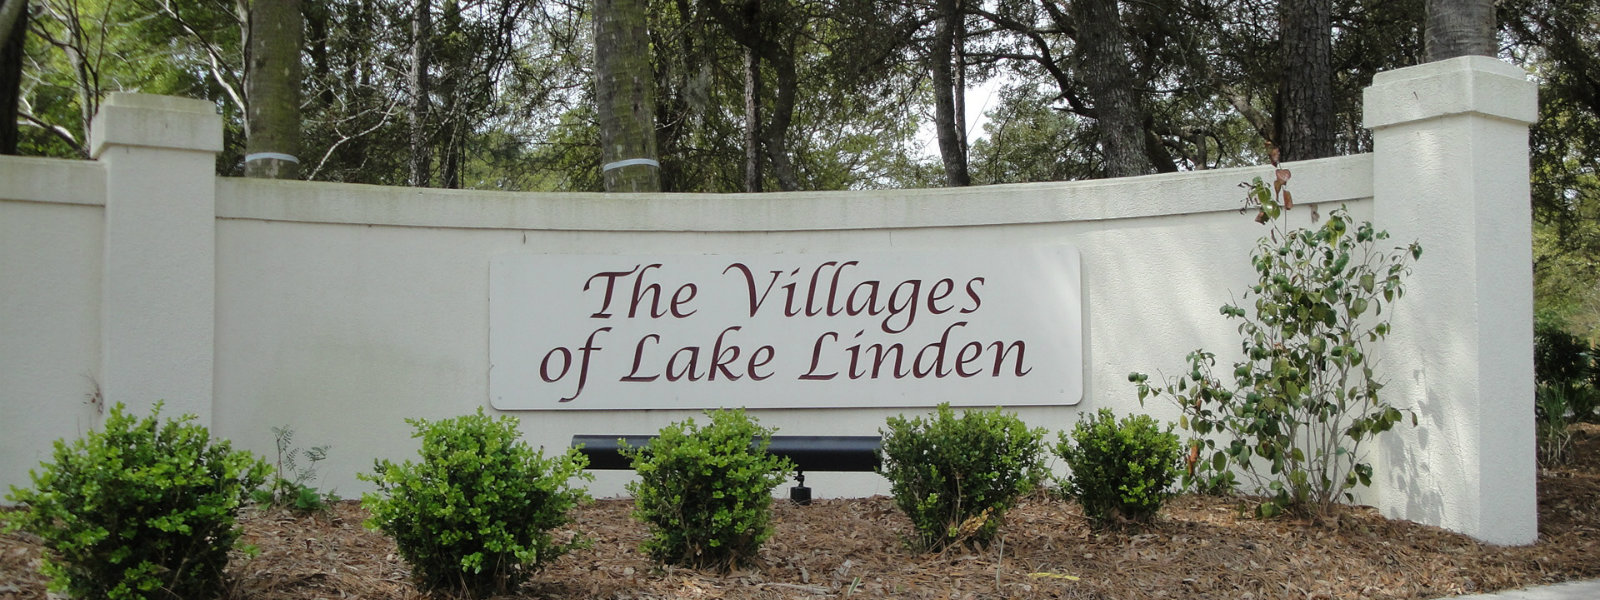 The Villages of Lake Linden 1600x600 Sign-2